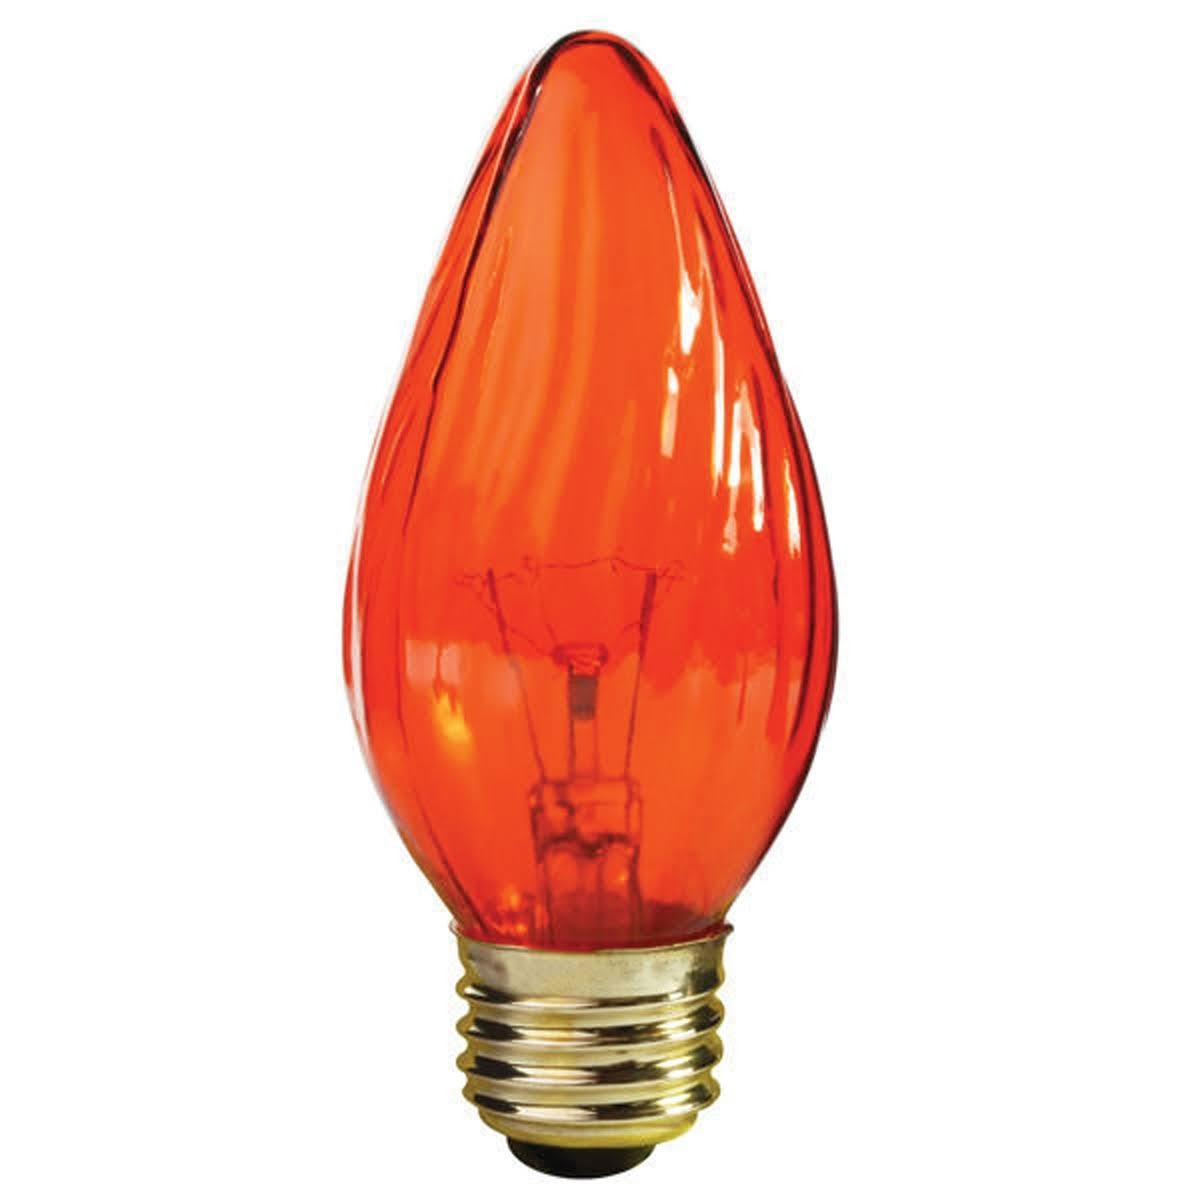 Satco Medium Base Amber F15 Light Bulb - 120V, 25W